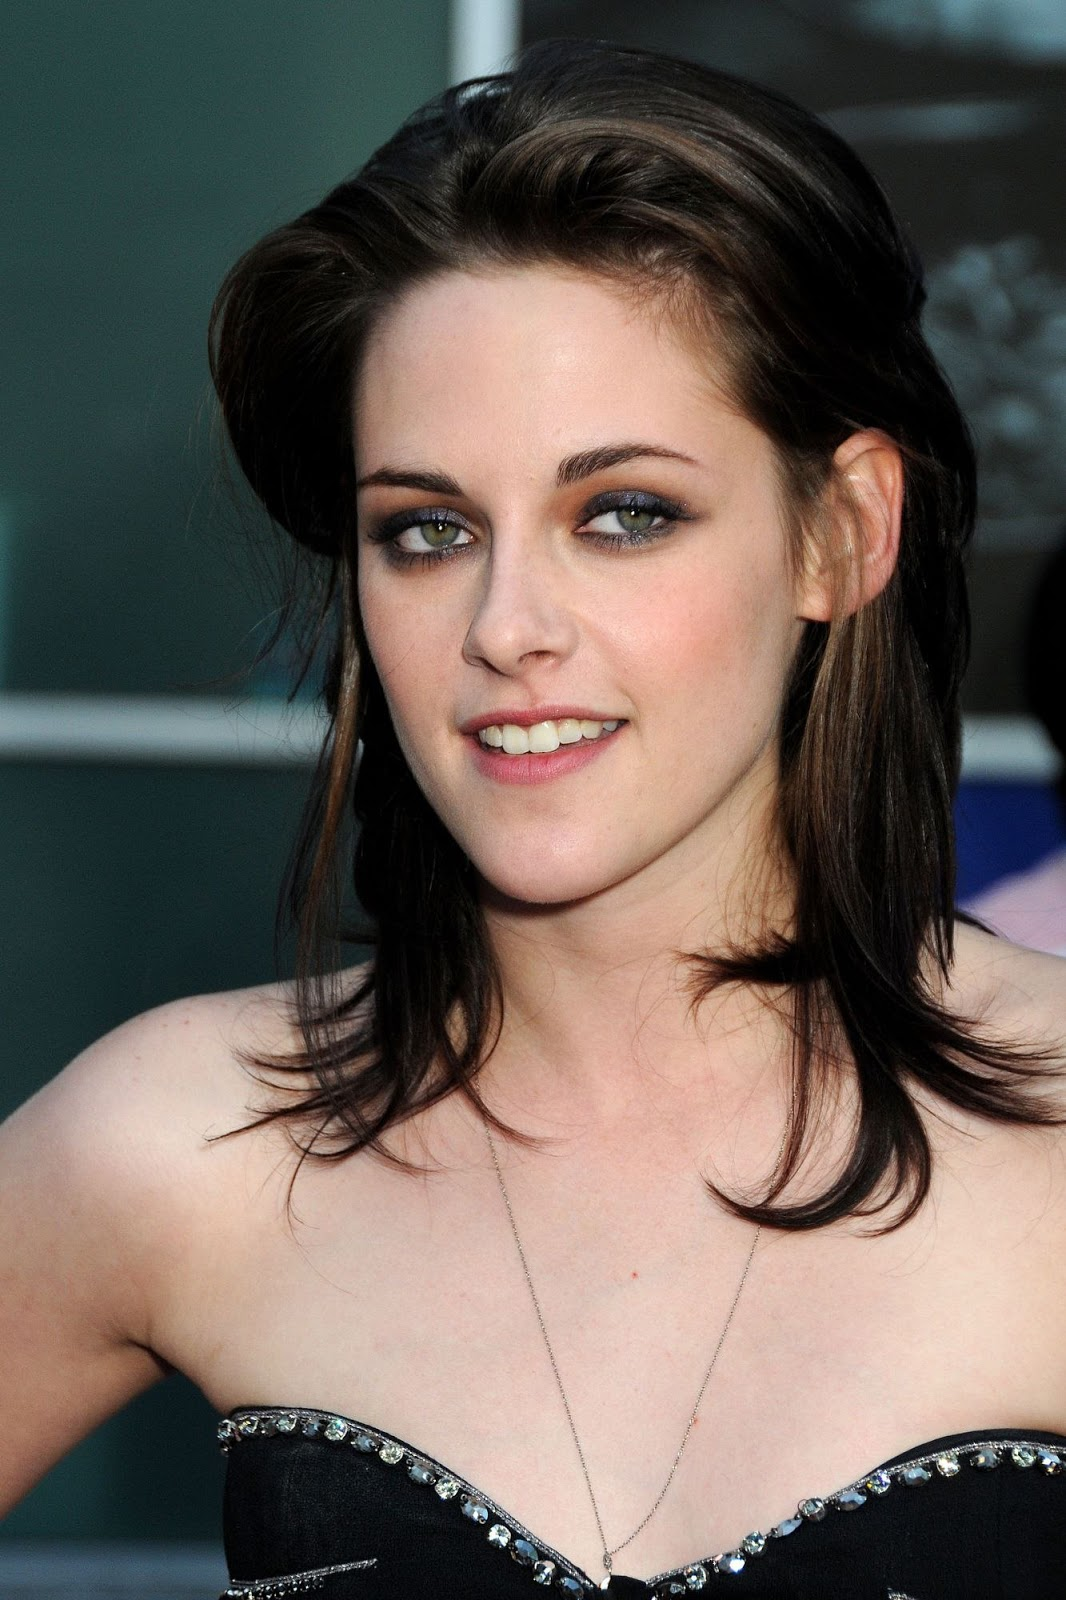 Kristen Stewart Hotkristen Stewart Hot Lip Kiss Hd Images -3099